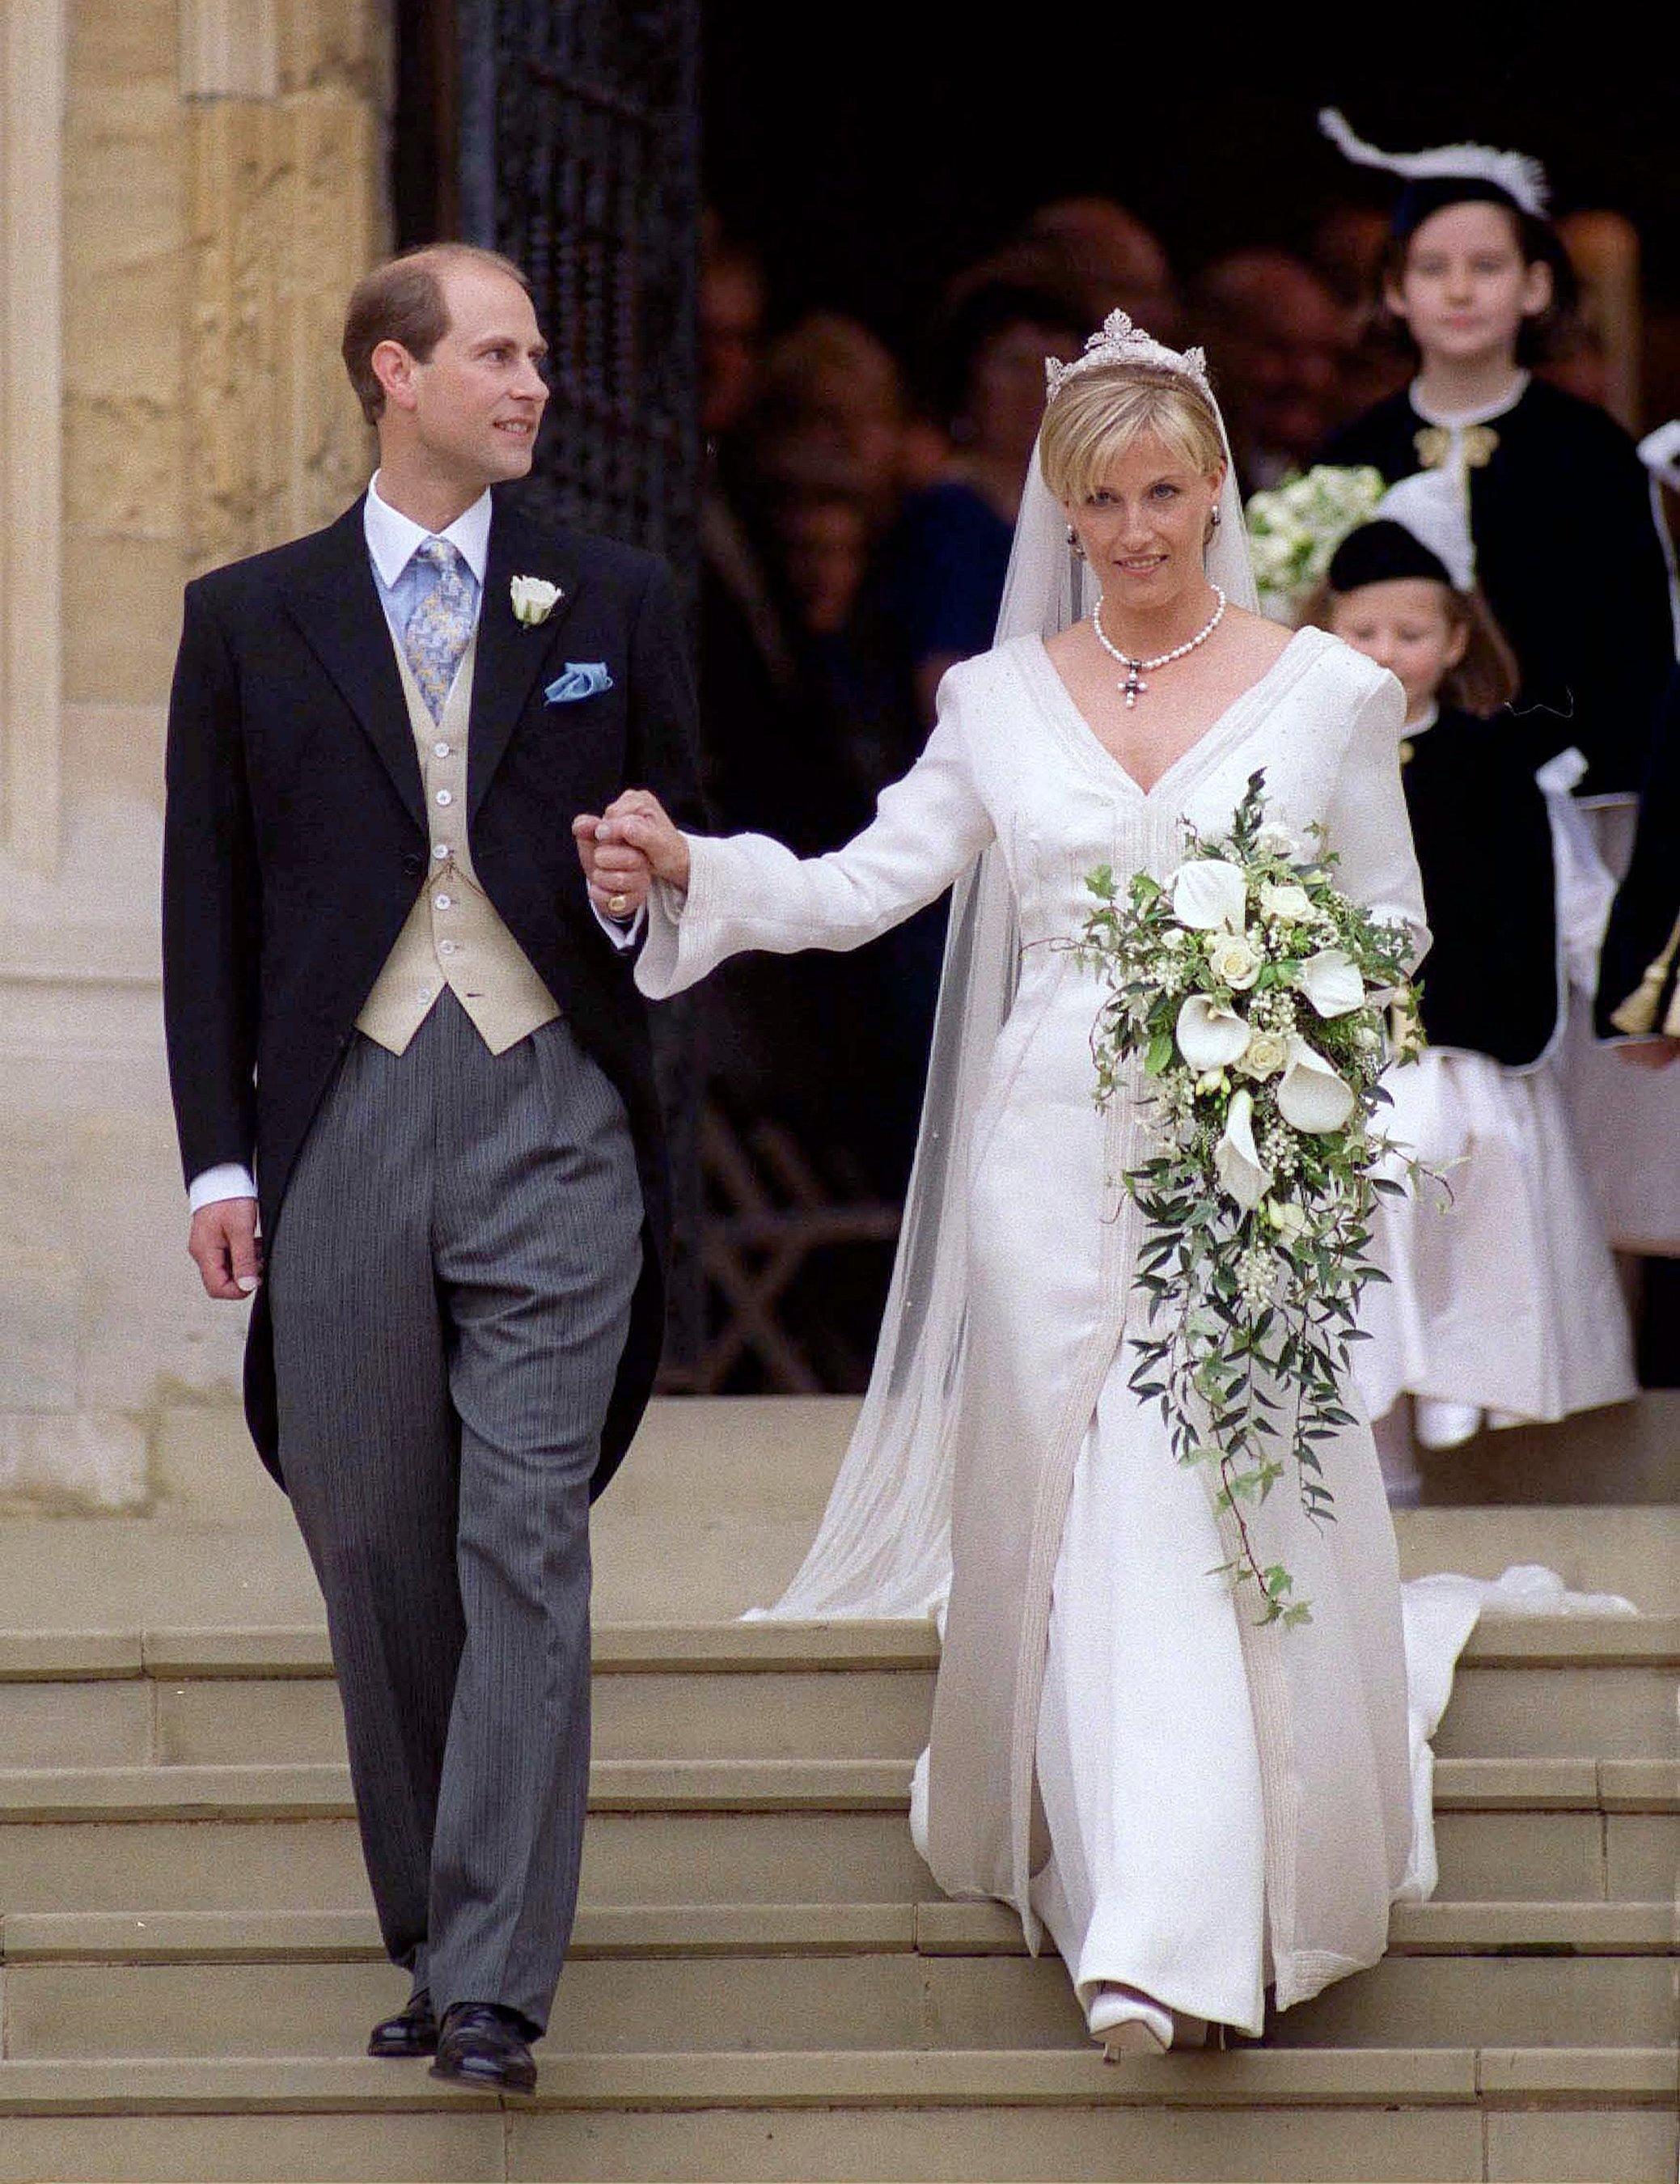 Prince Edward (the Queen's fourth child and third son) married Sophie Rhys-Jones on June 19, 1999.